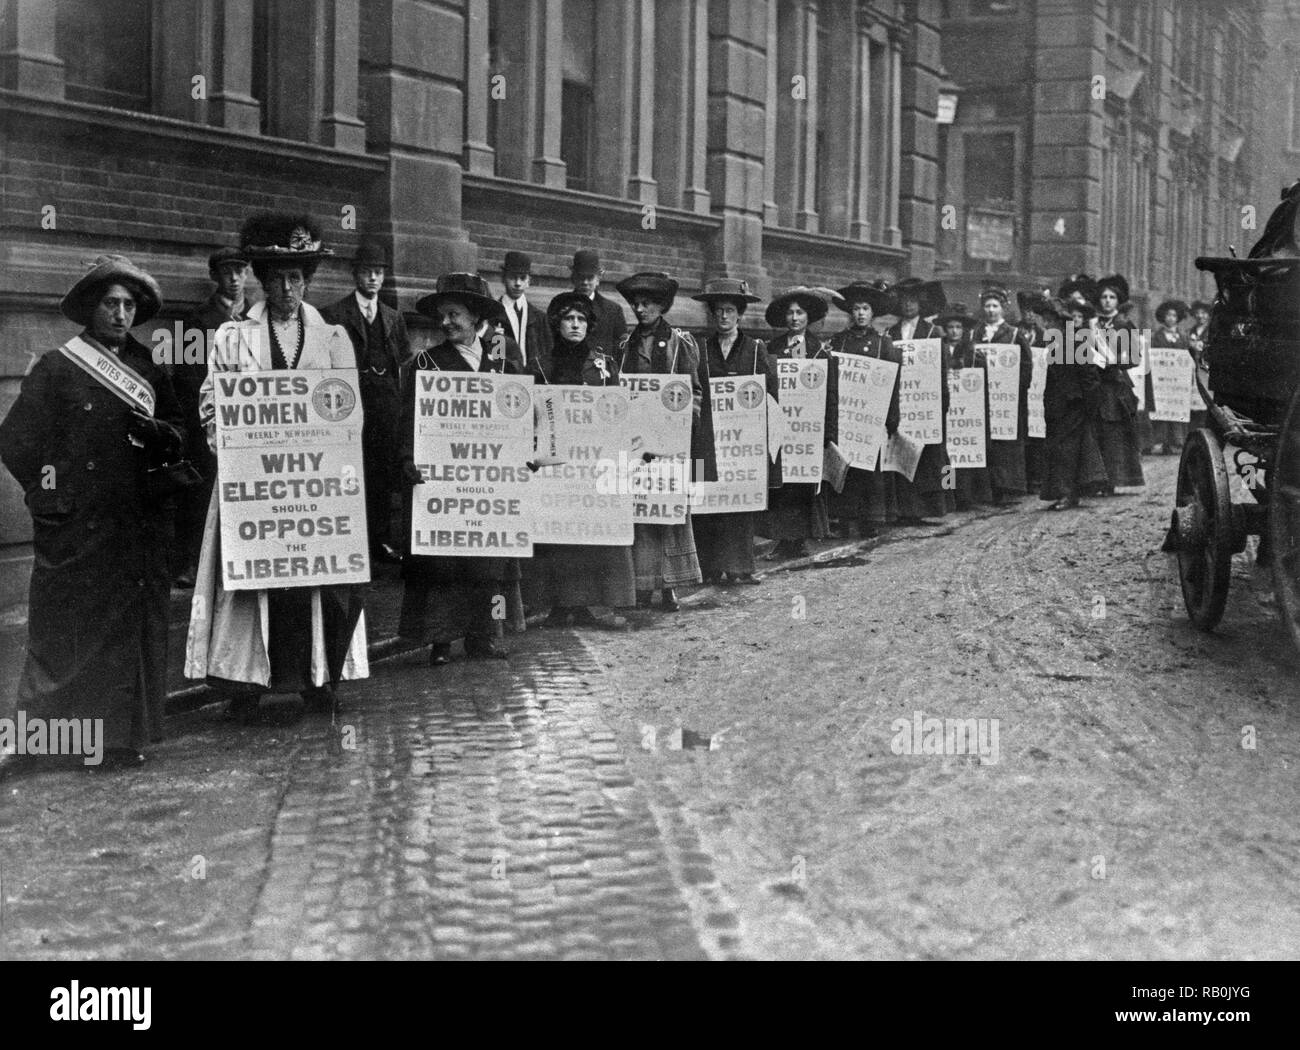 London 1910. Members of the Women's Suffragette movement campaign against the British Liberal party prior to the 1910 General election. - Stock Image